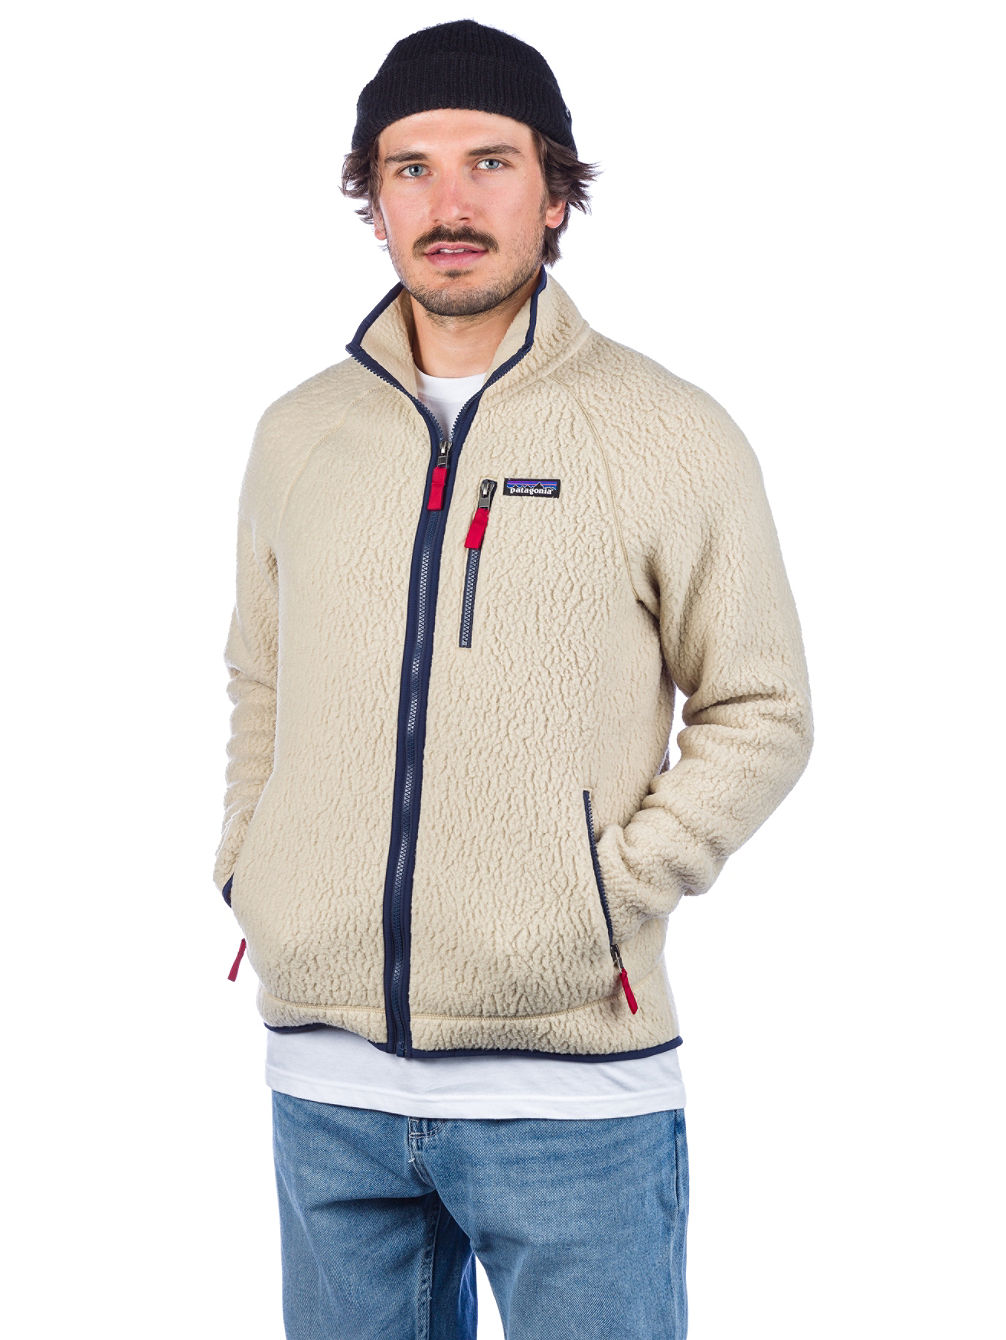 performance sportswear for whole family cheap for sale Buy Patagonia Retro Pile Jacket online at Blue Tomato